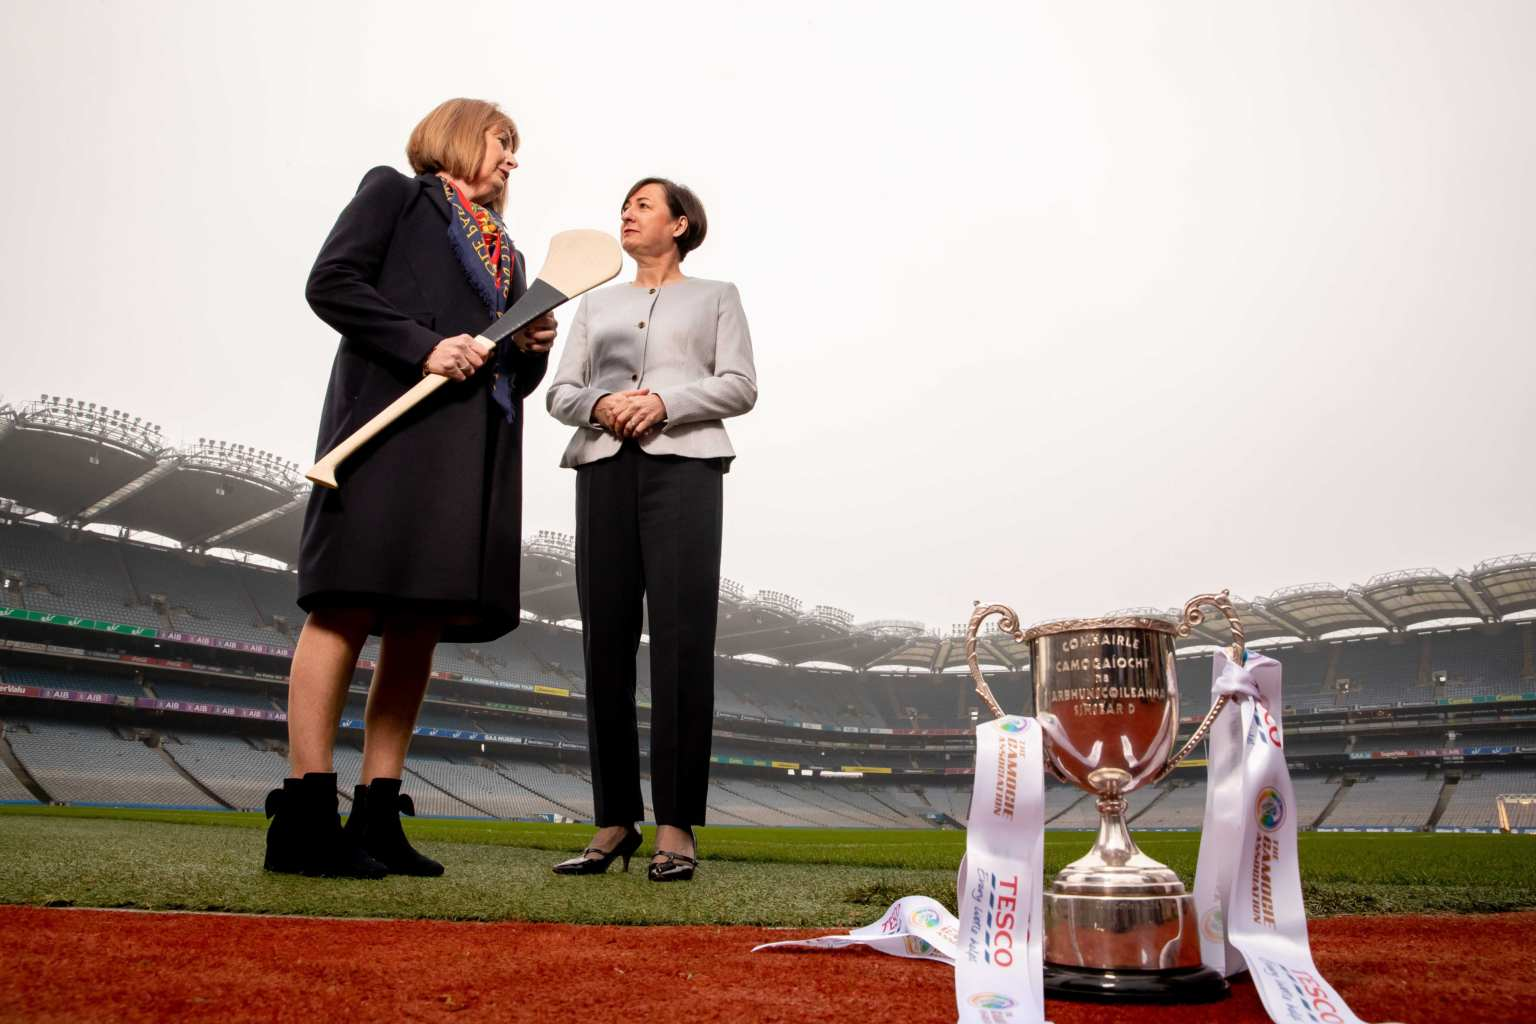 Camogie Association President Kathleen Woods is pictured with Tesco Ireland CEO Kari Daniels on the Croke Park sideline are the announcement that Tesco Ireland are the new Youth Development sponsor.